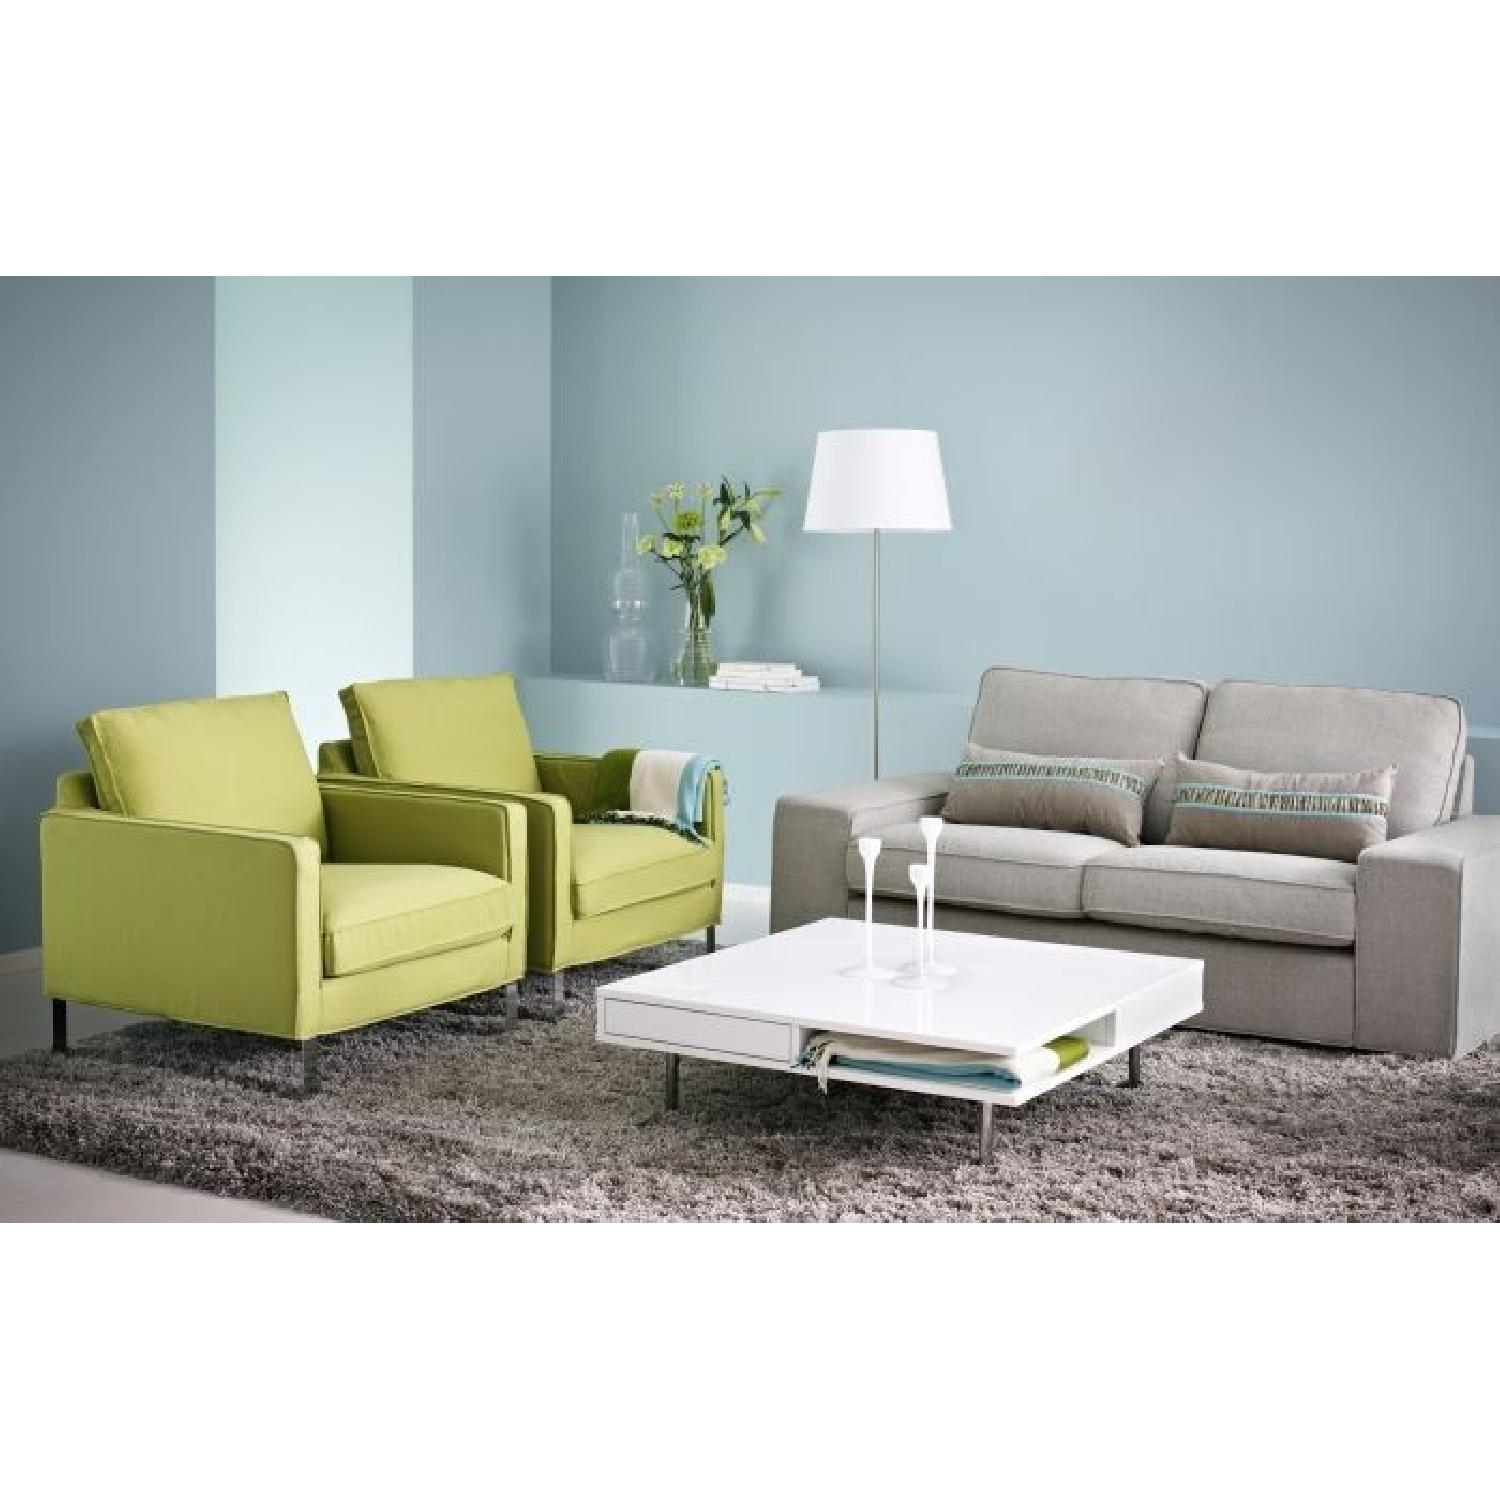 Ikea Kivik Sofa Reviews Immaculate Condition Seater Ikea  : 1500 1500 frame 0 from thisnext.us size 1500 x 1500 jpeg 157kB